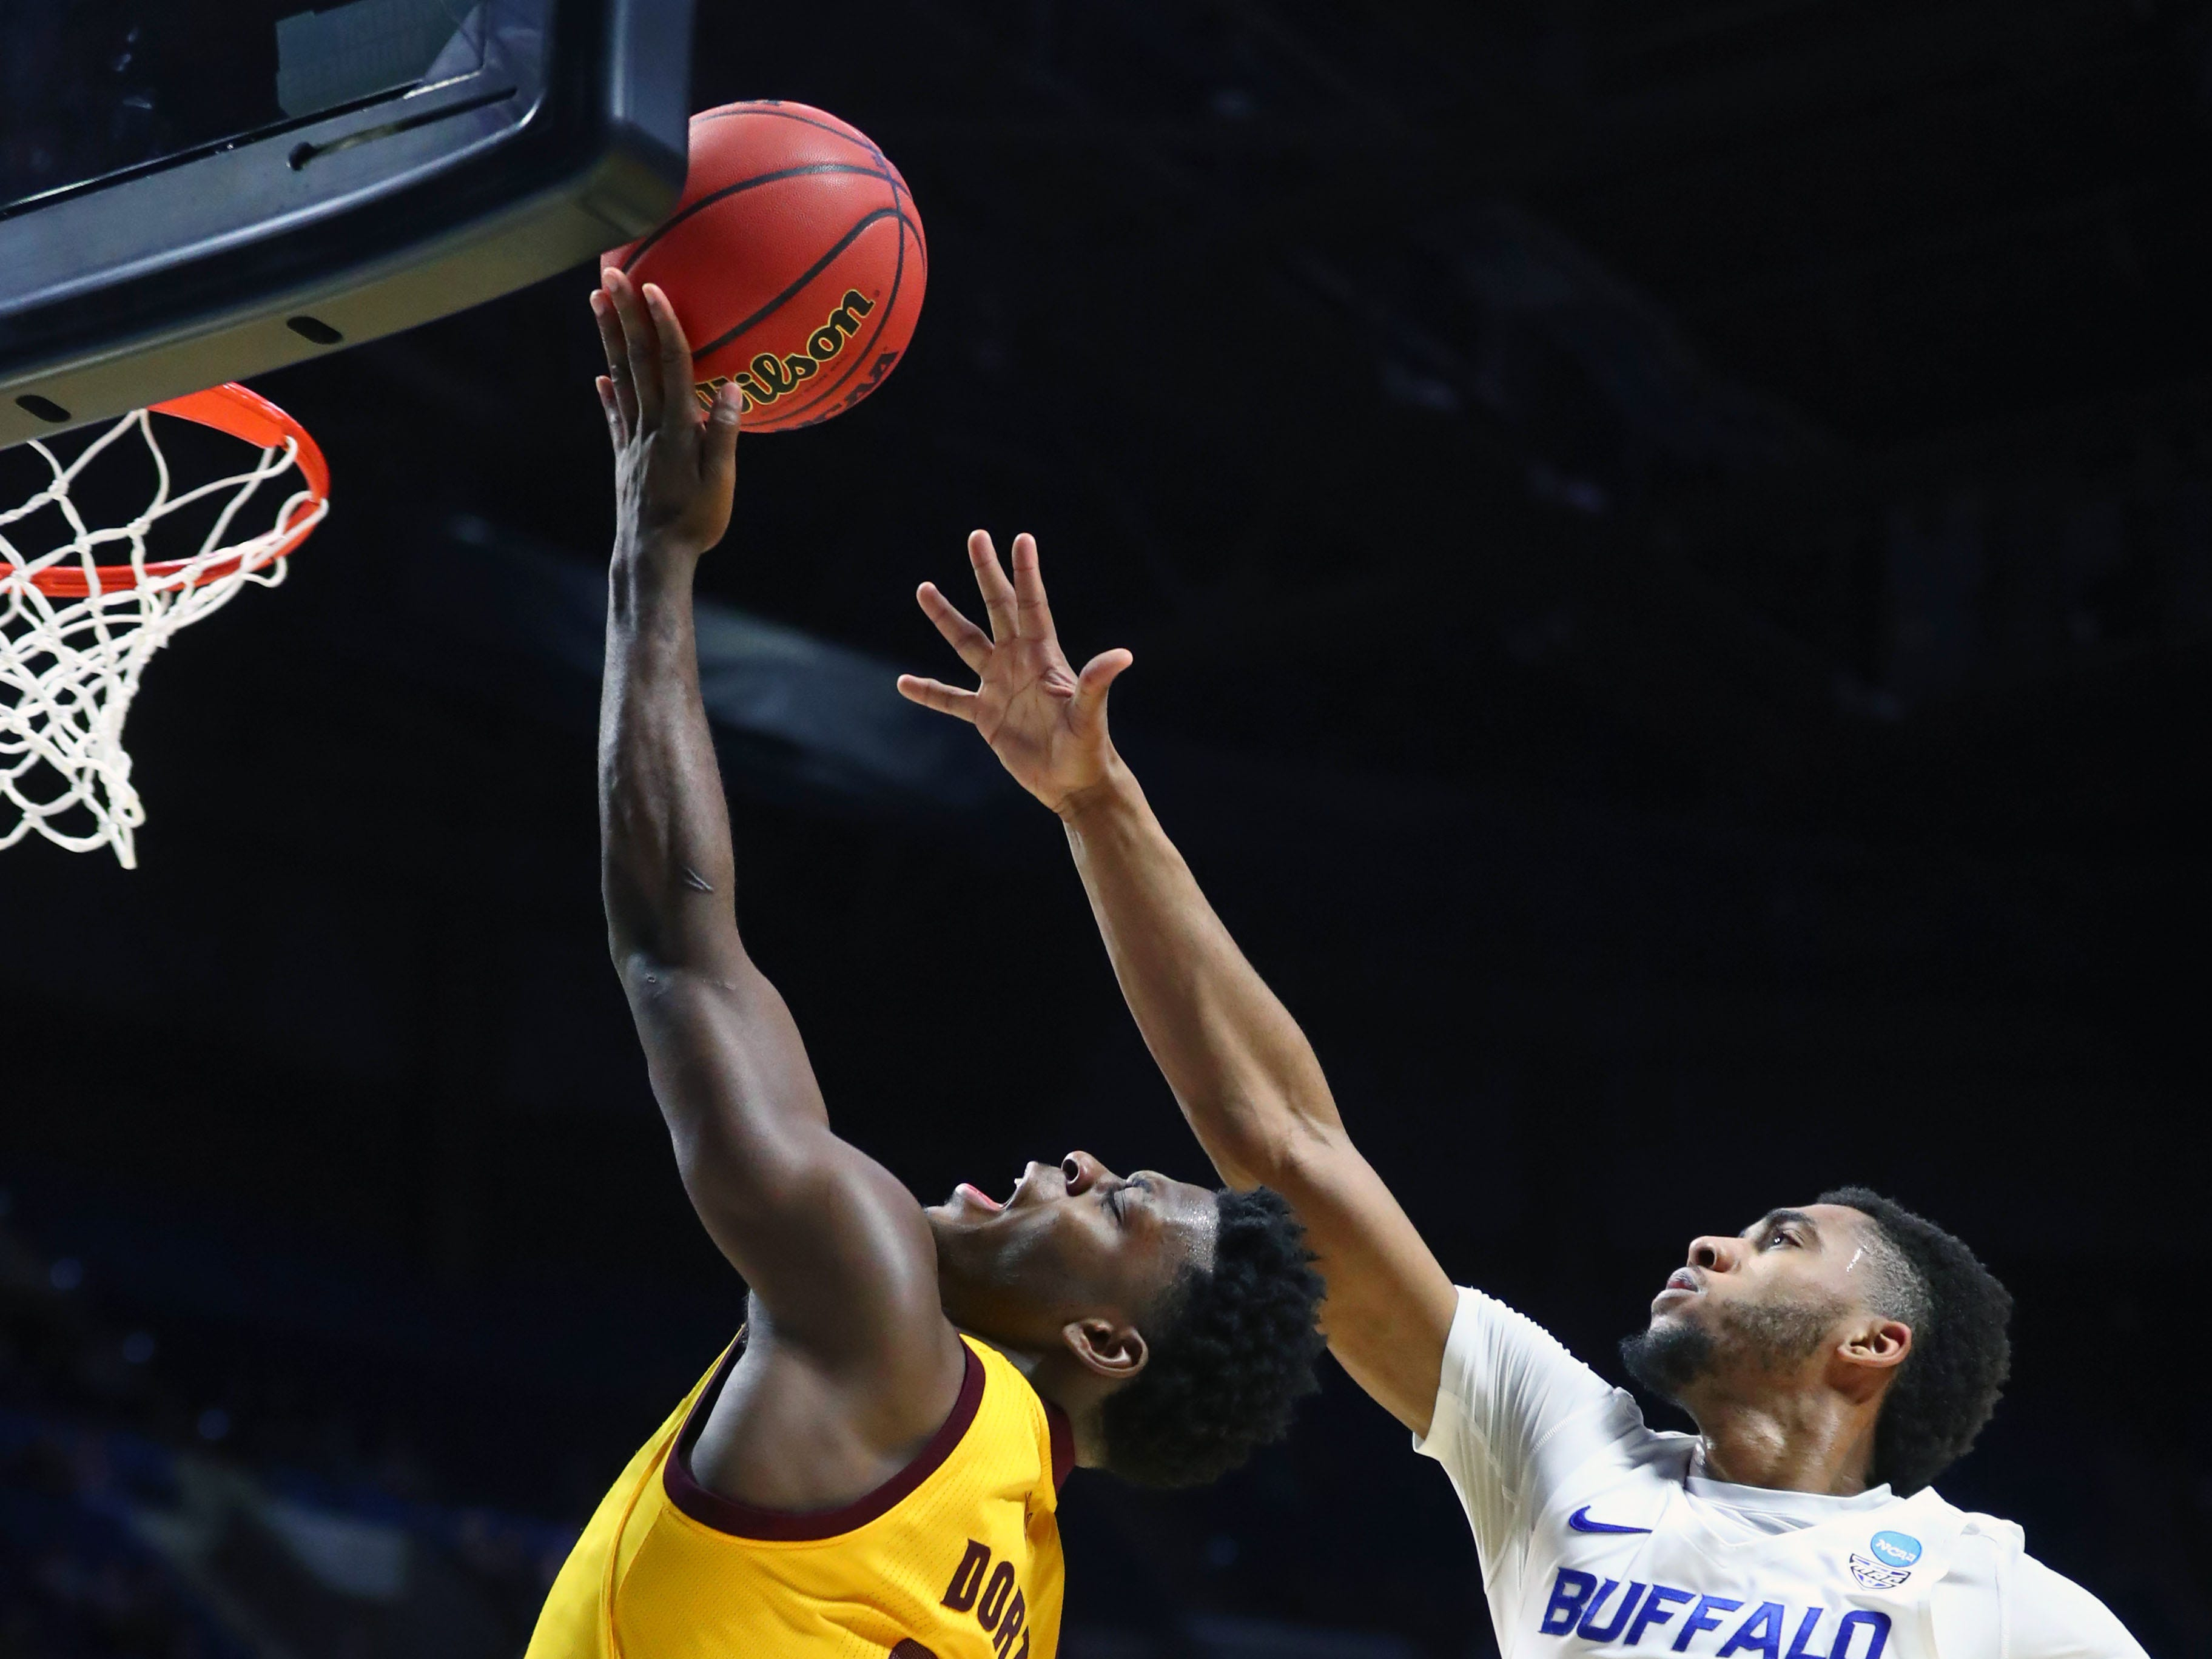 Mar 22, 2019; Tulsa, OK, USA; Arizona State Sun Devils guard Luguentz Dort (0) shoots while defended by Buffalo Bulls guard Jayvon Graves (3) during the first half in the first round of the 2019 NCAA Tournament at BOK Center. Mandatory Credit: Mark J. Rebilas-USA TODAY Sports